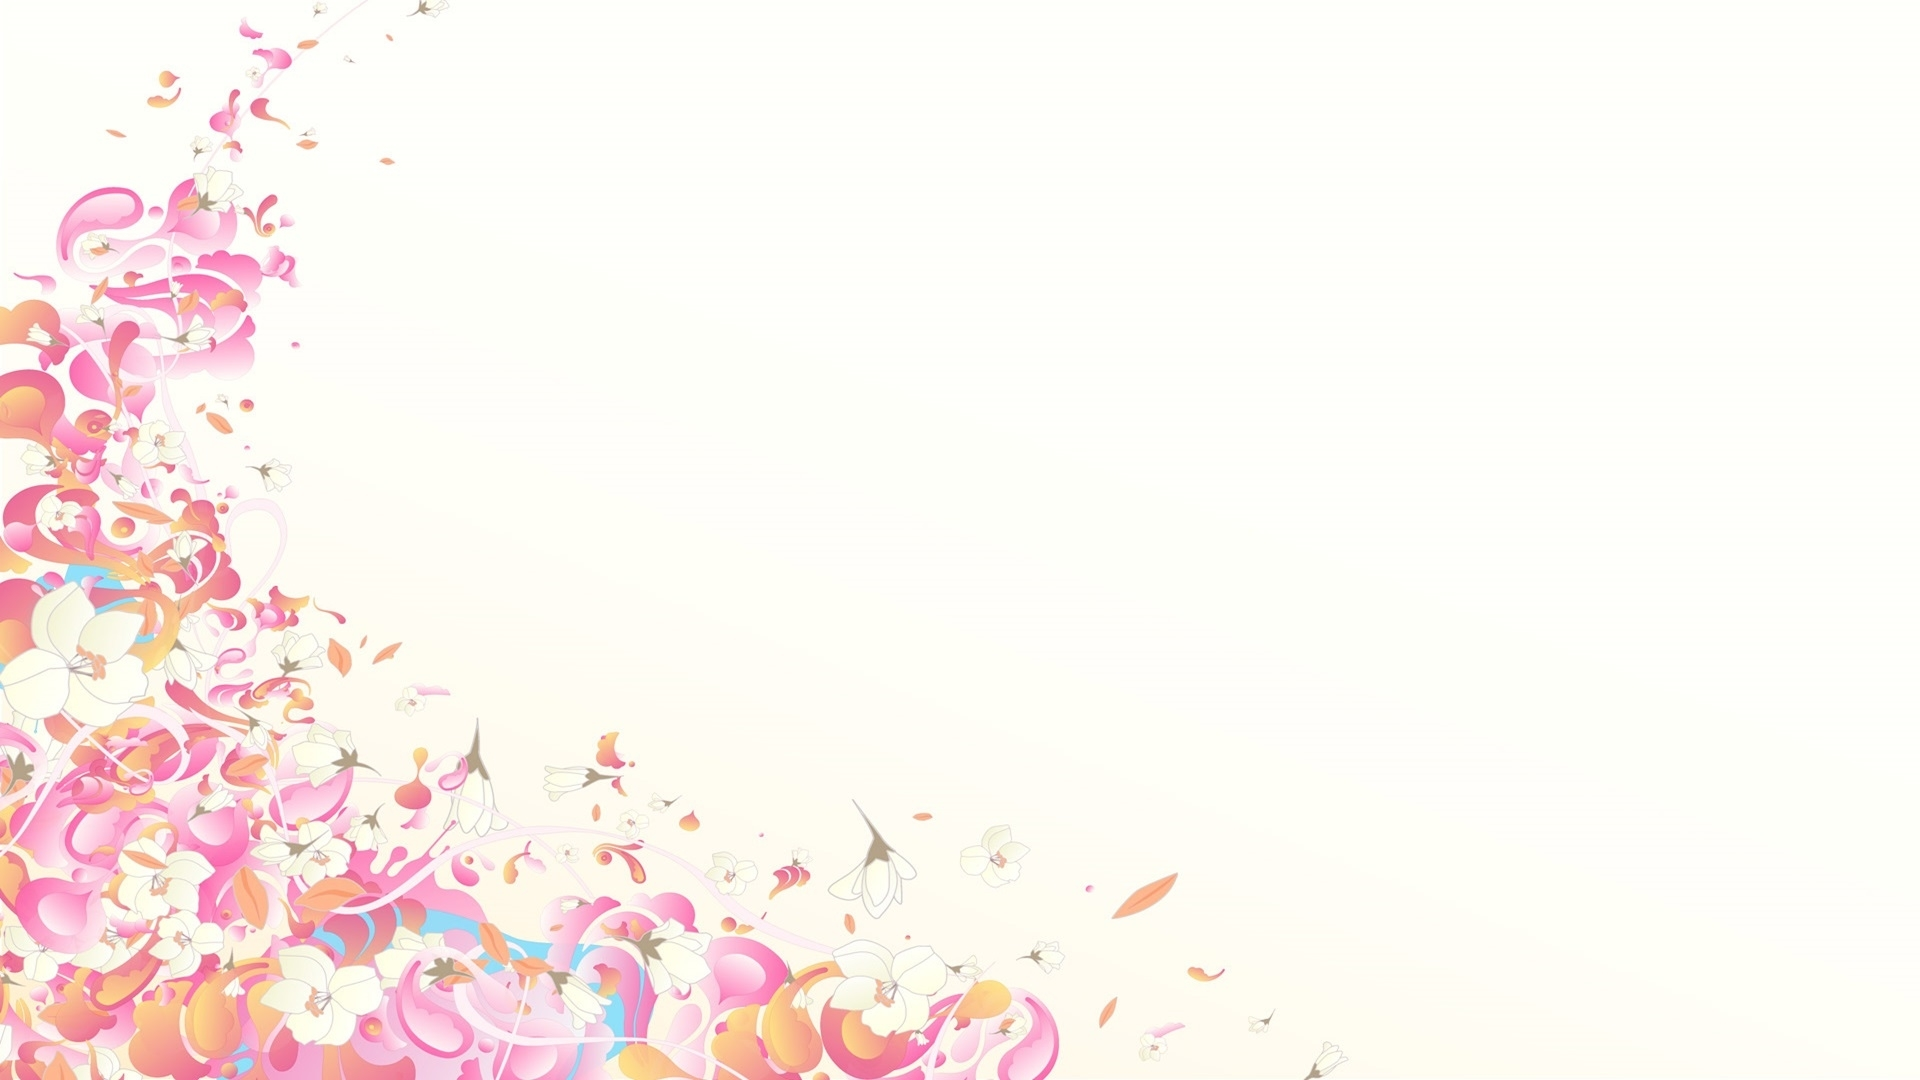 3d and abstract wallpapers hd desktop backgrounds page 27 - White abstract background hd ...